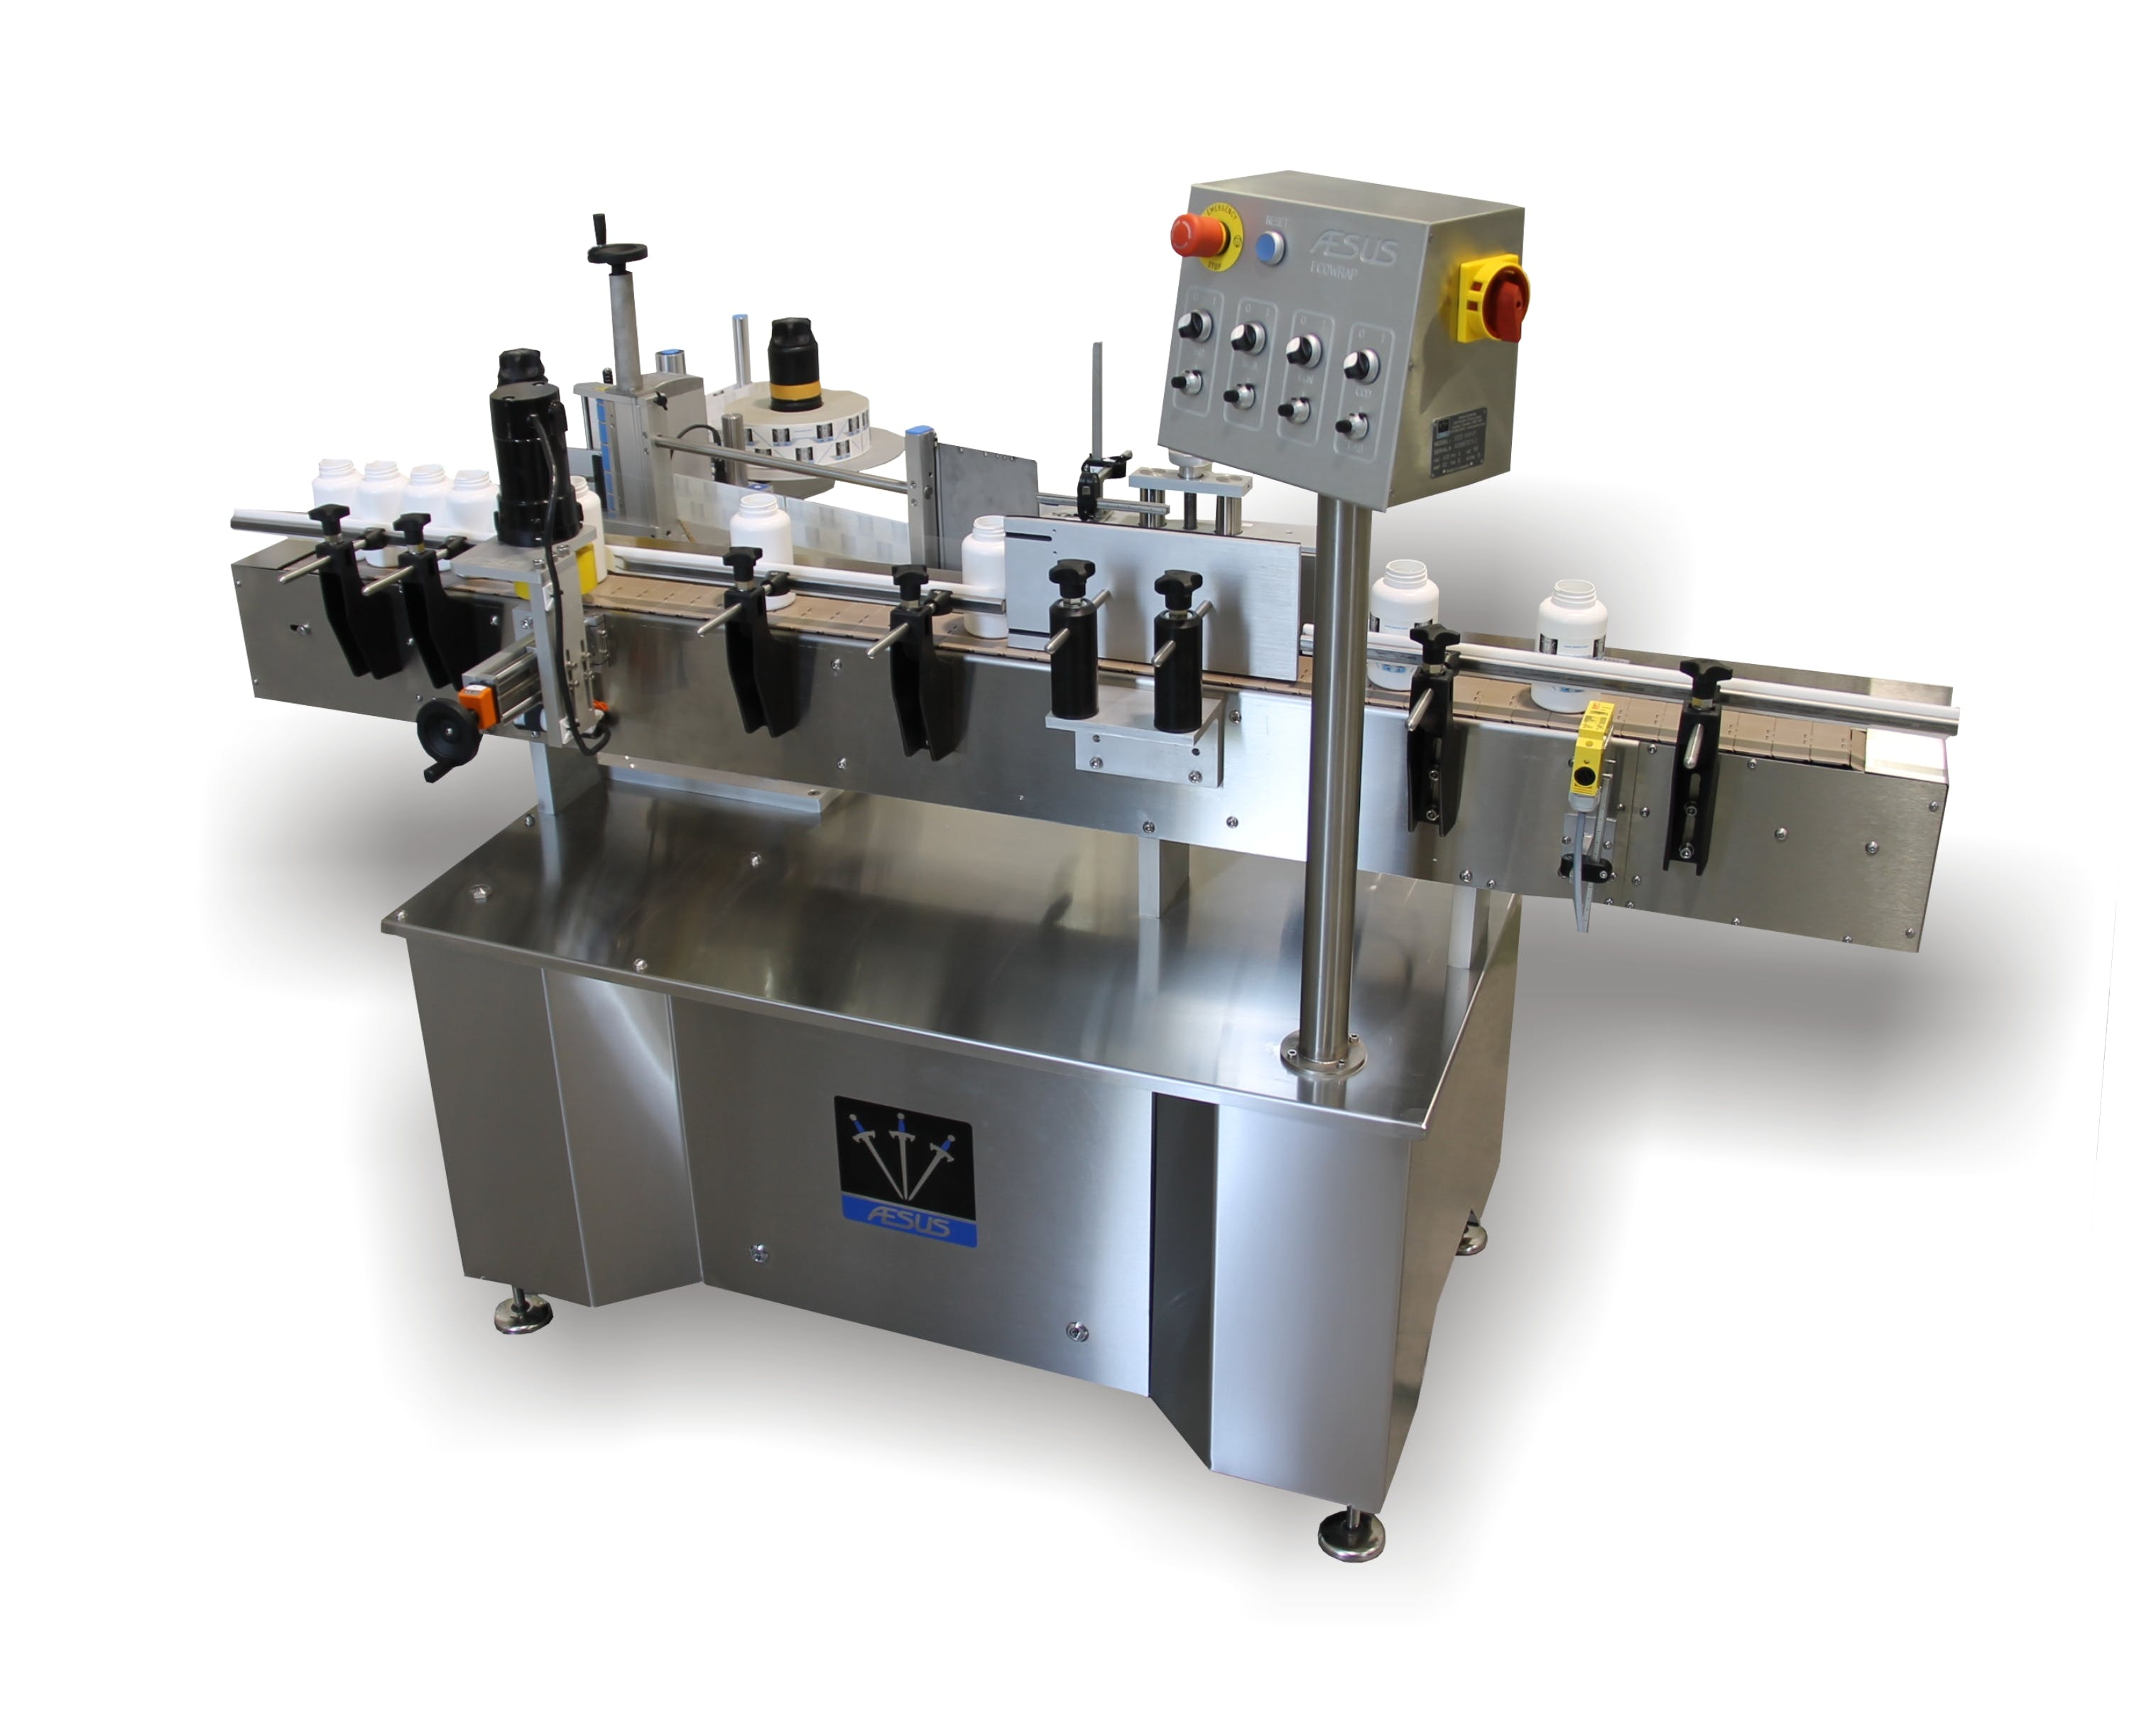 Aesus Eco Wrap Labeler - with PRISM Roller Option Bottle labeler sold by Package Devices LLC